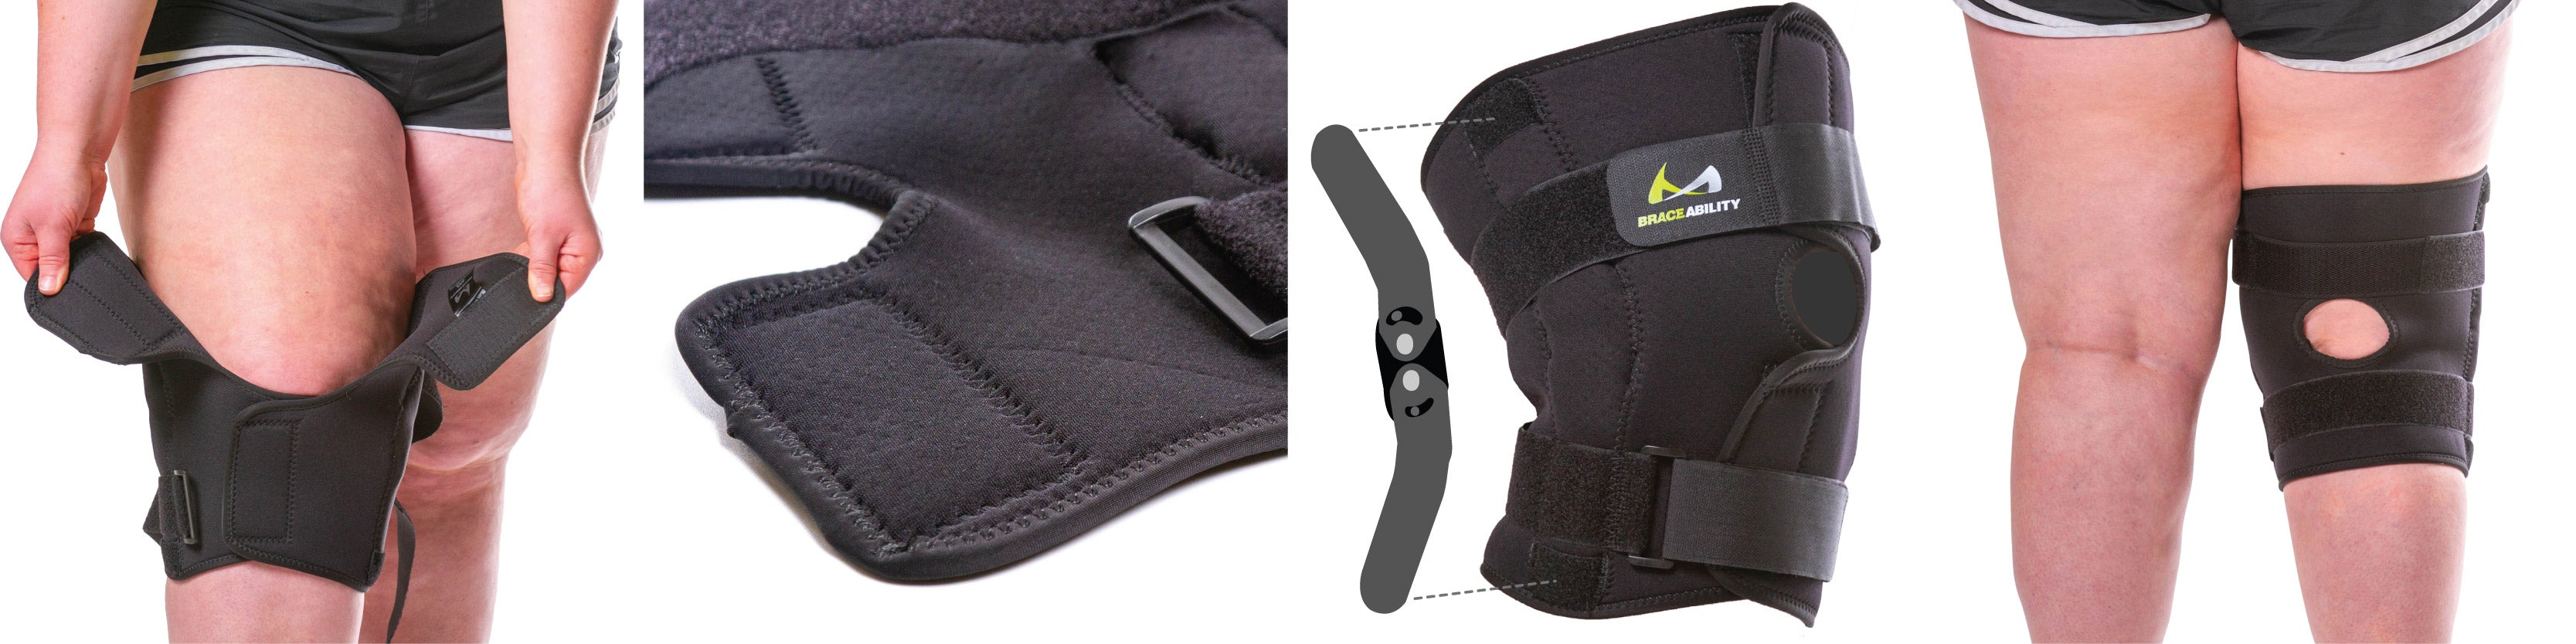 best features of the bariatric plus size hinged knee brace